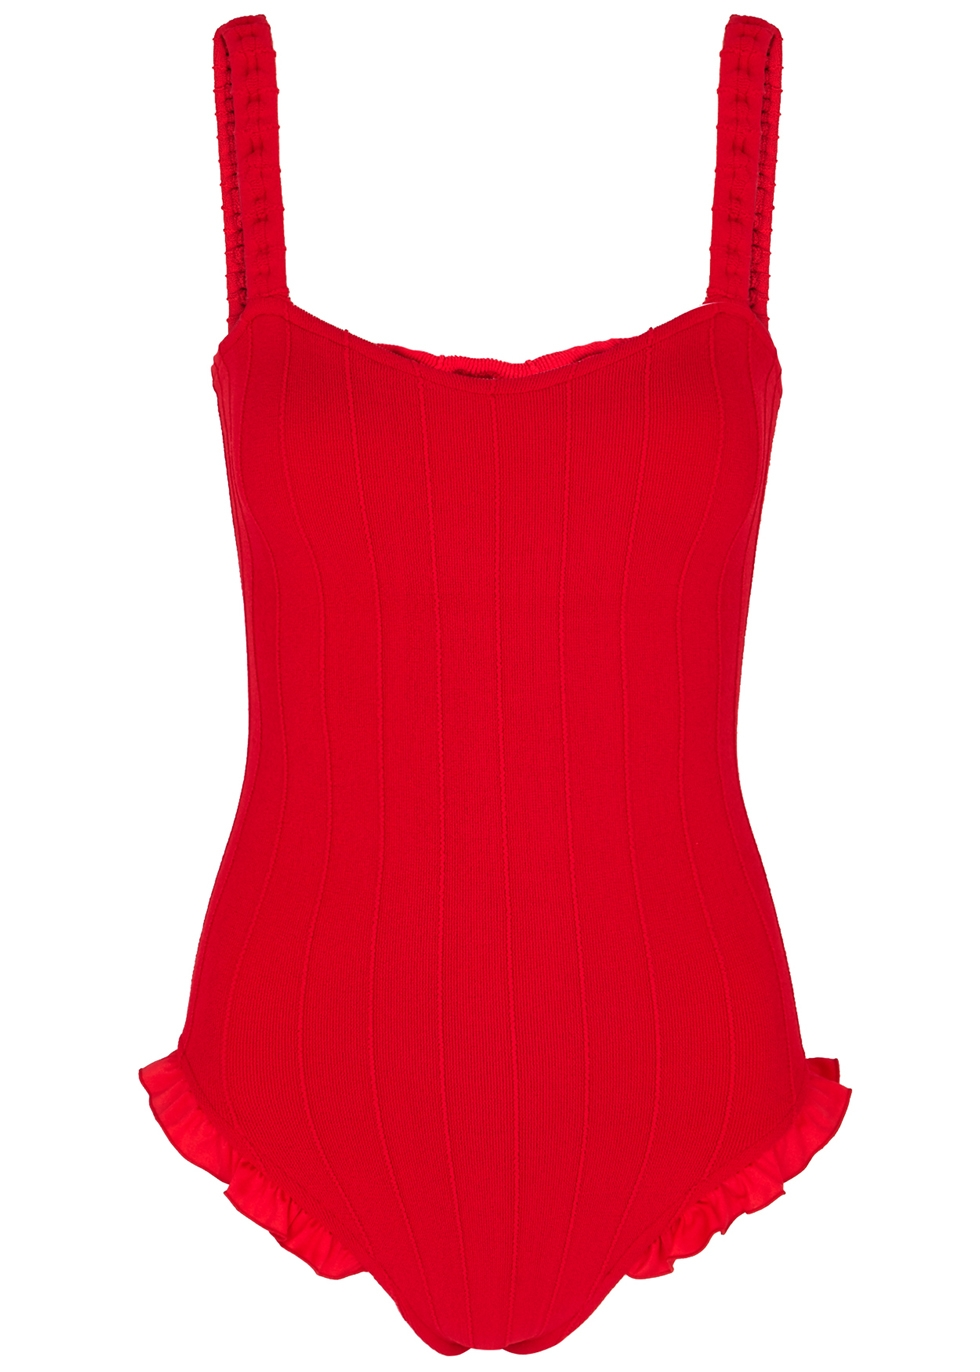 Tyit red ruffle-trimmed swimsuit - Hunza G